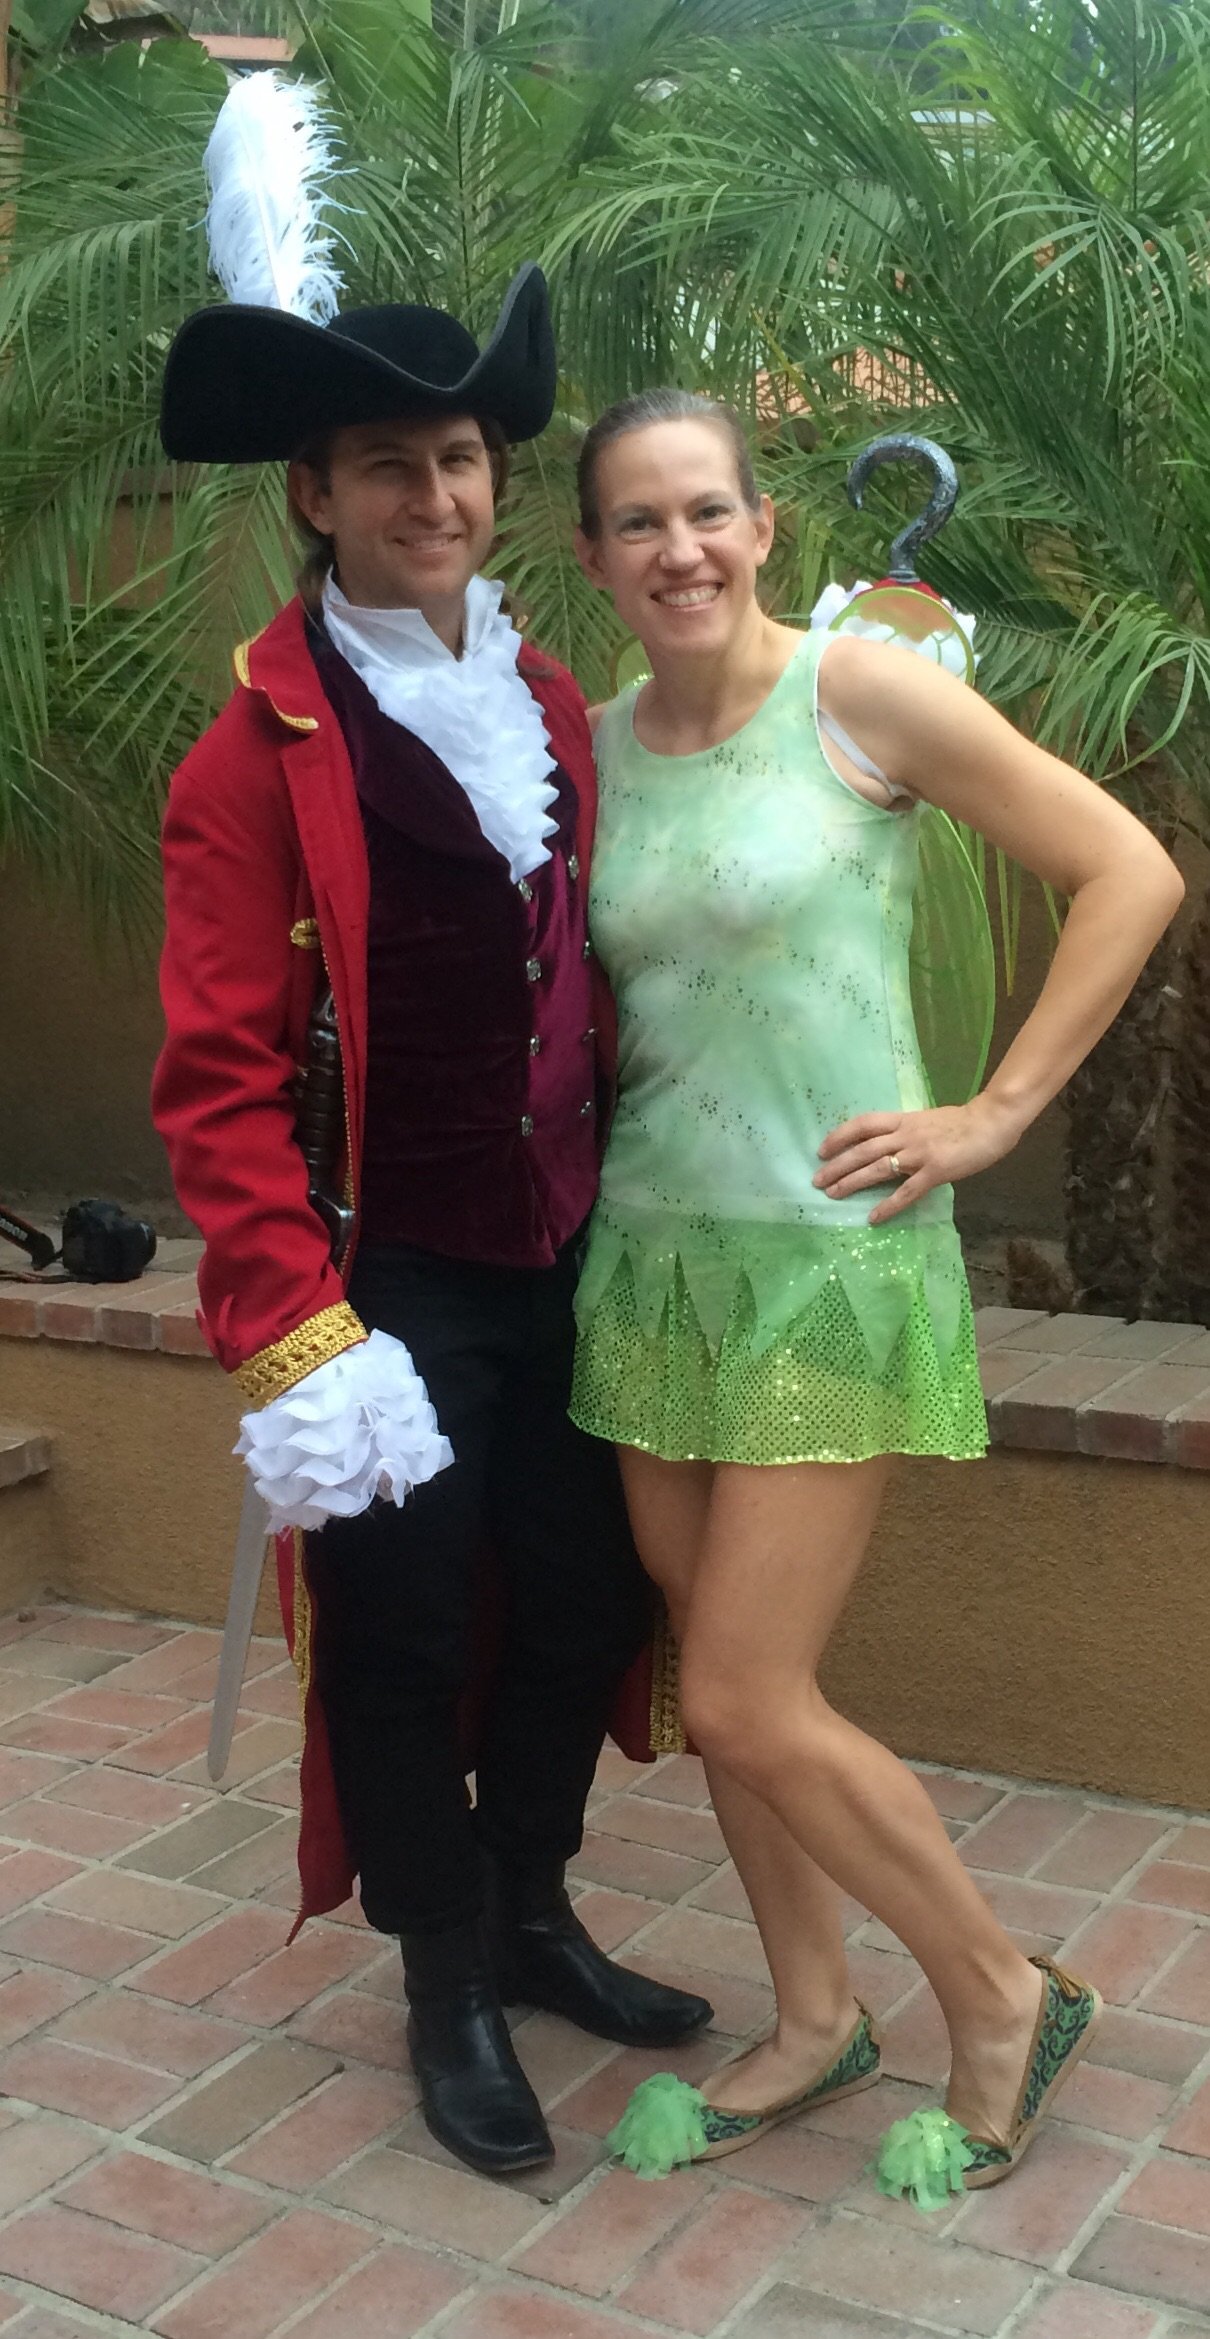 Captain Hook and Tinker Bell  sc 1 st  Fit Fun Mom & Tinker Bell Running Costume | Fit Fun Mom